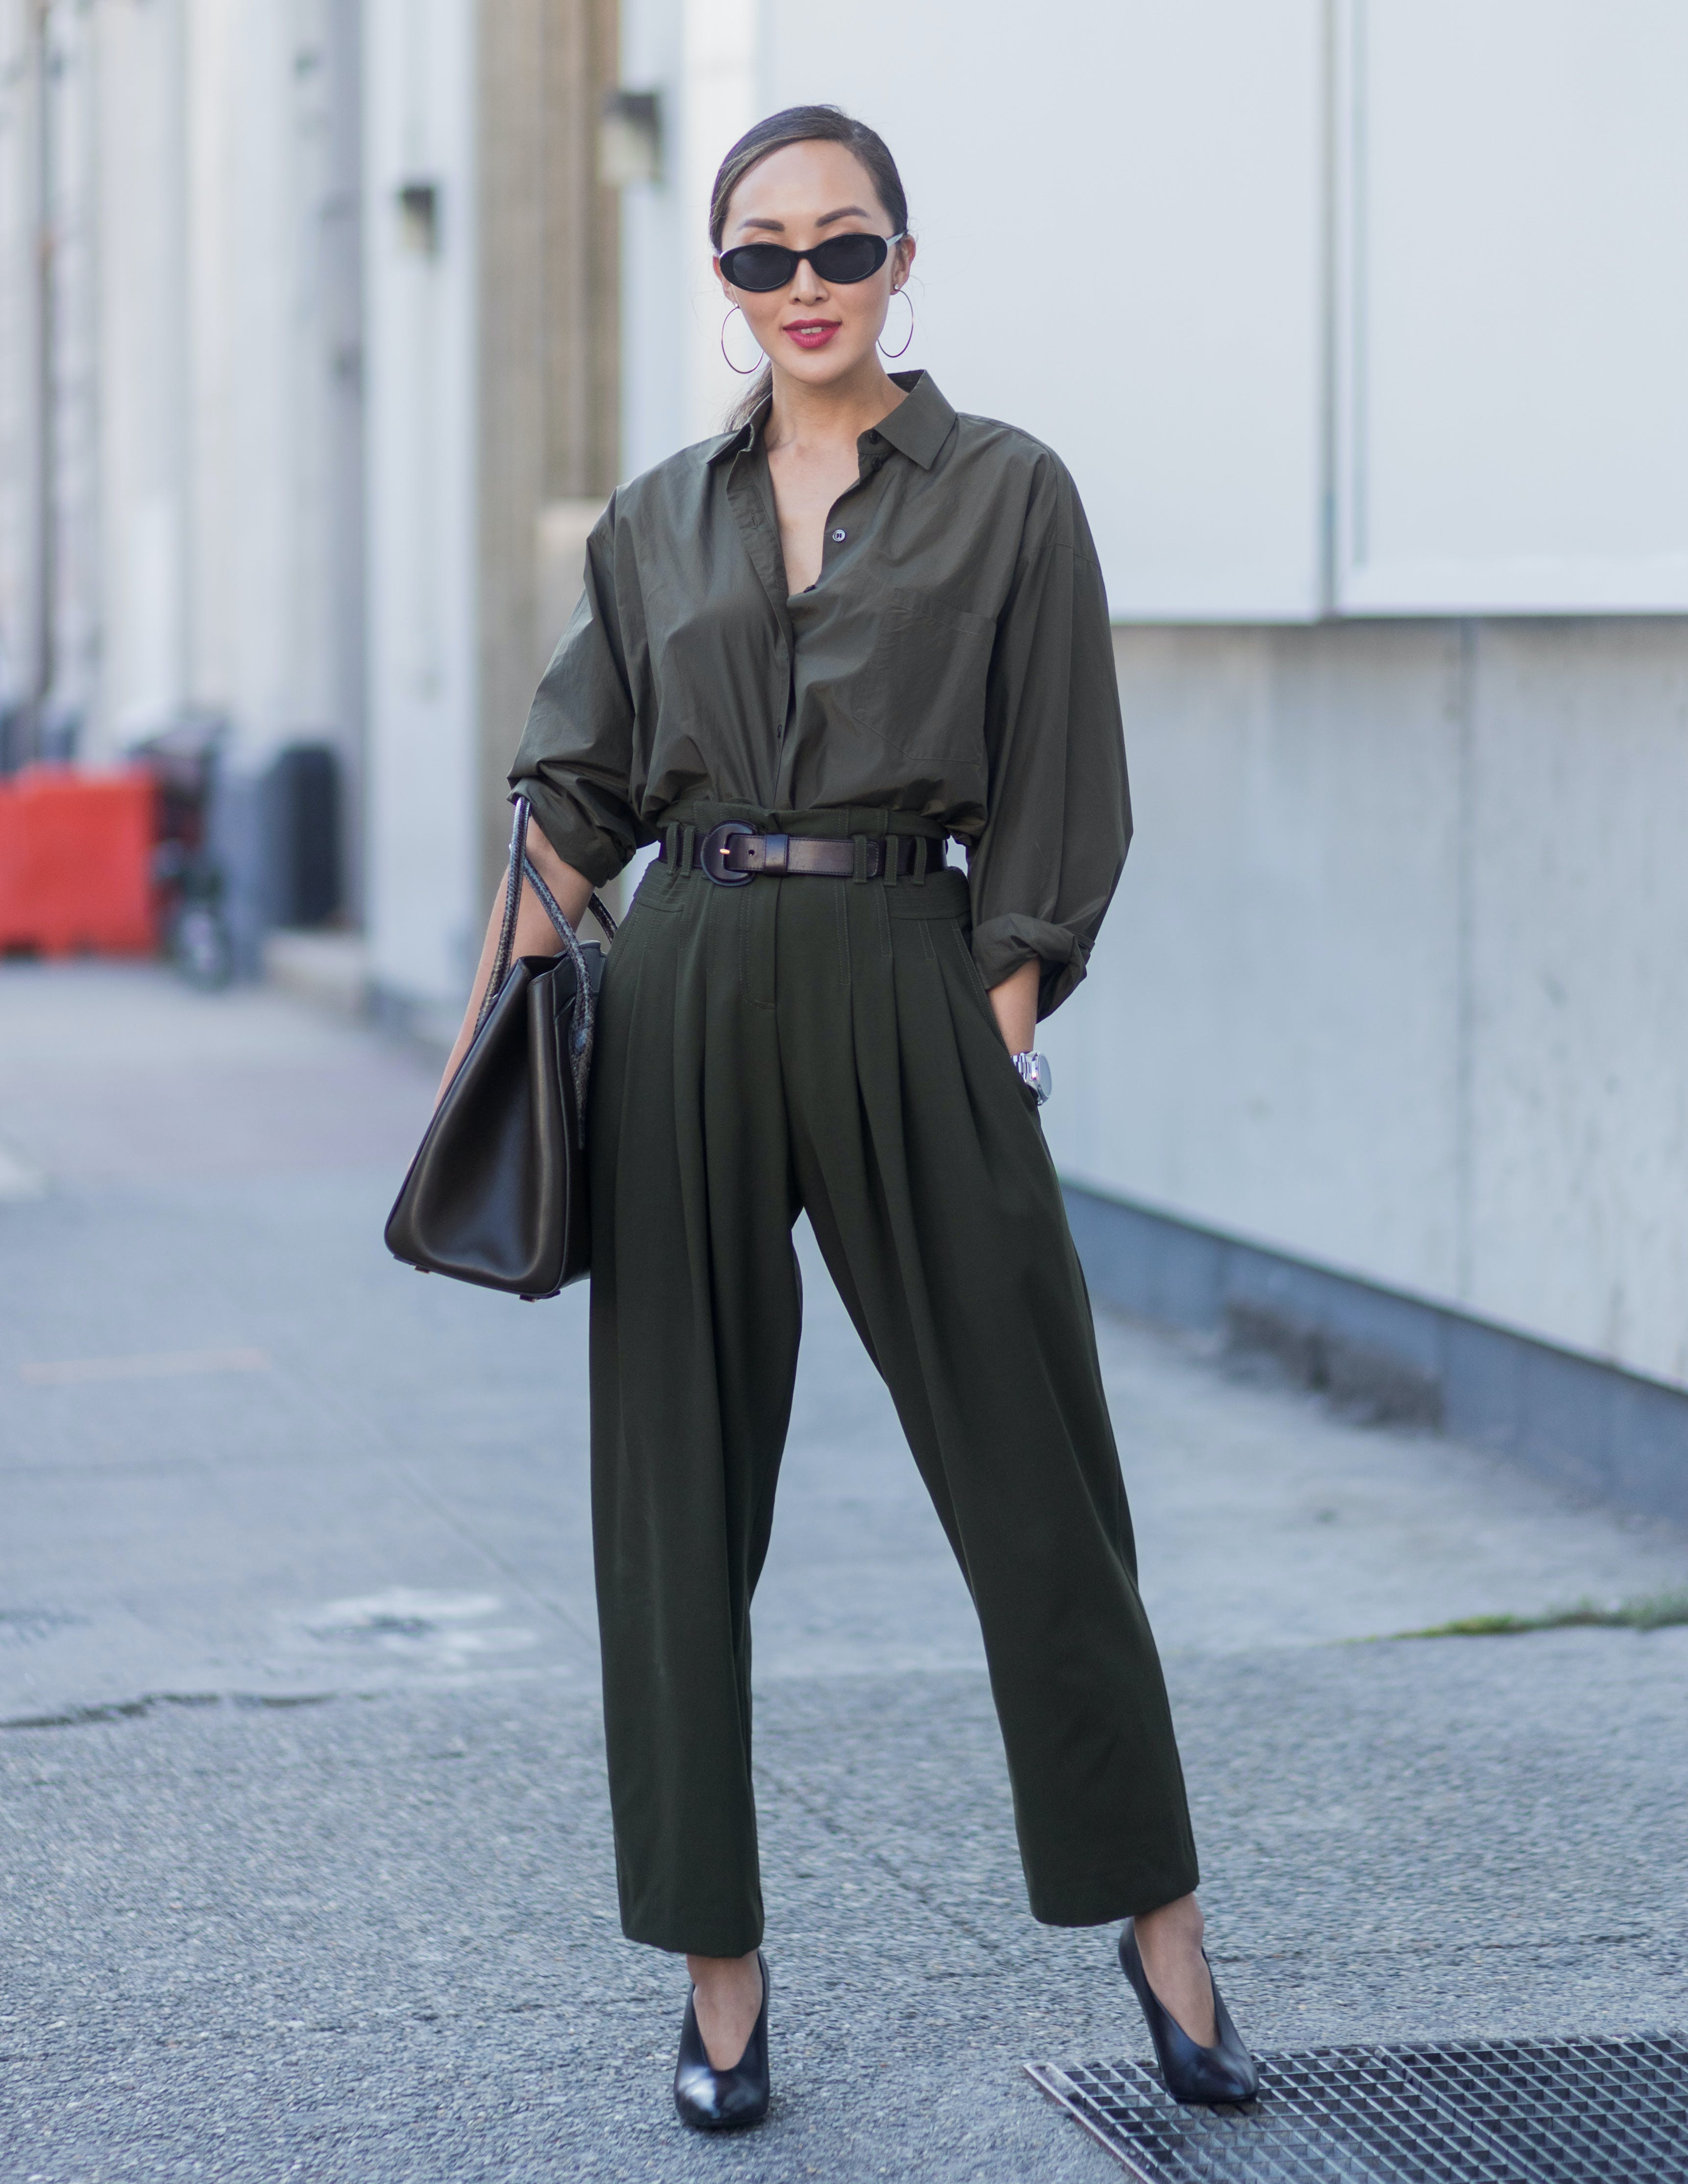 try wearing a green boiler suit1